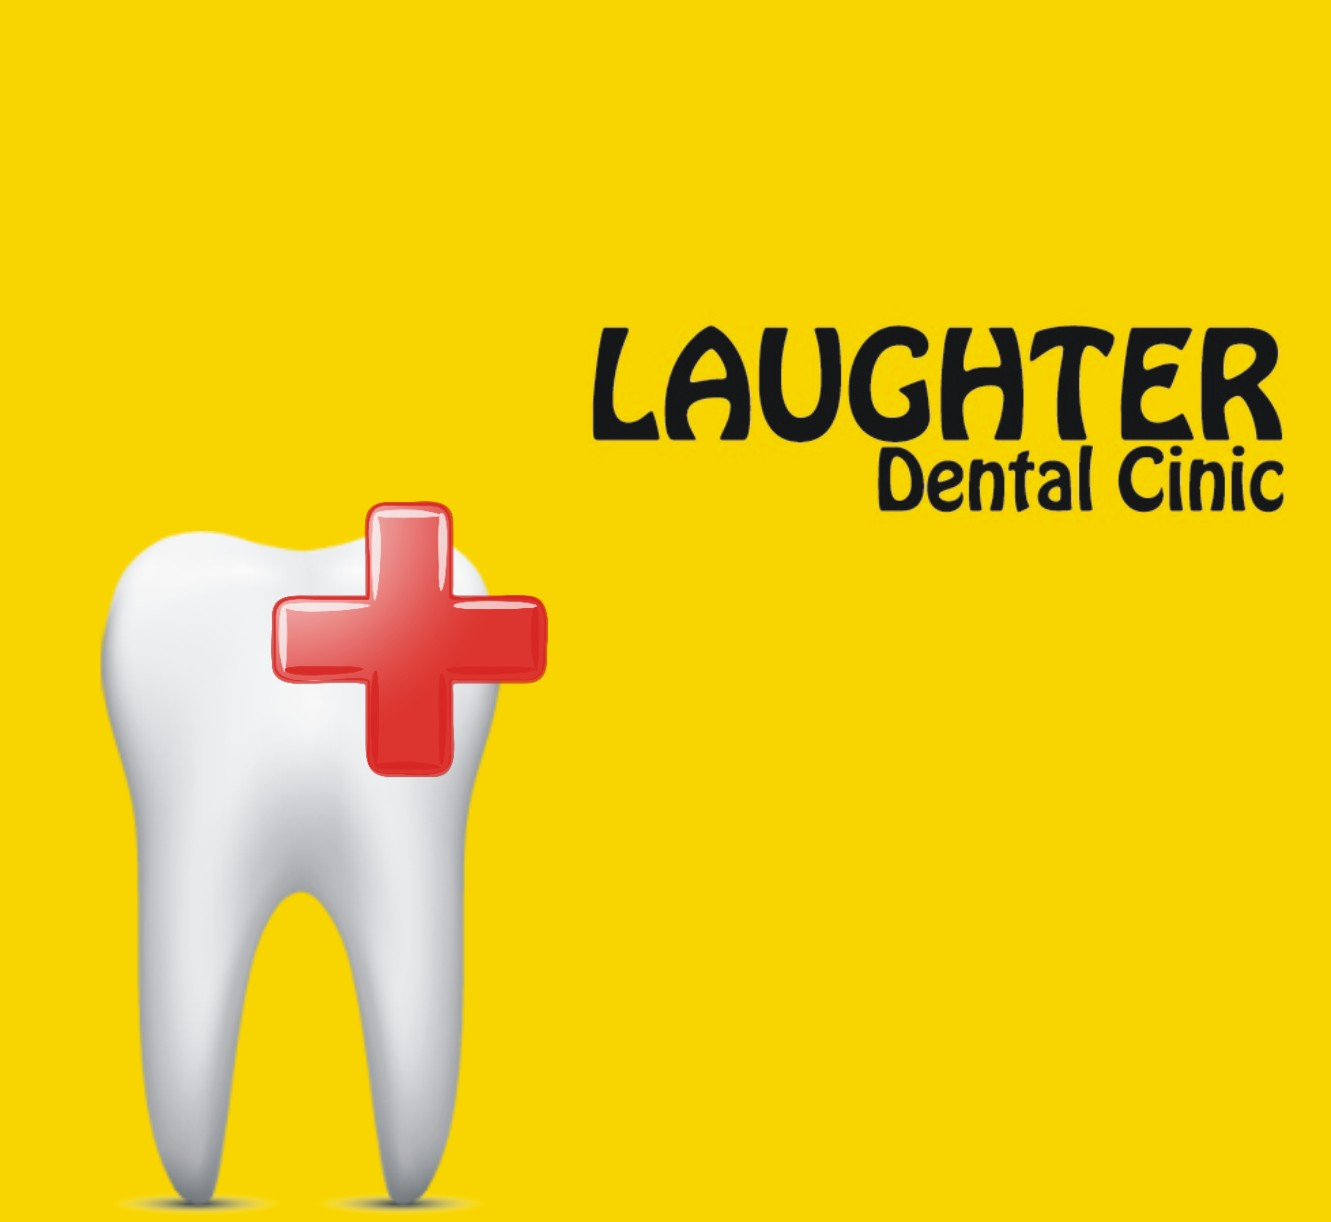 Laughter Dental Clinic